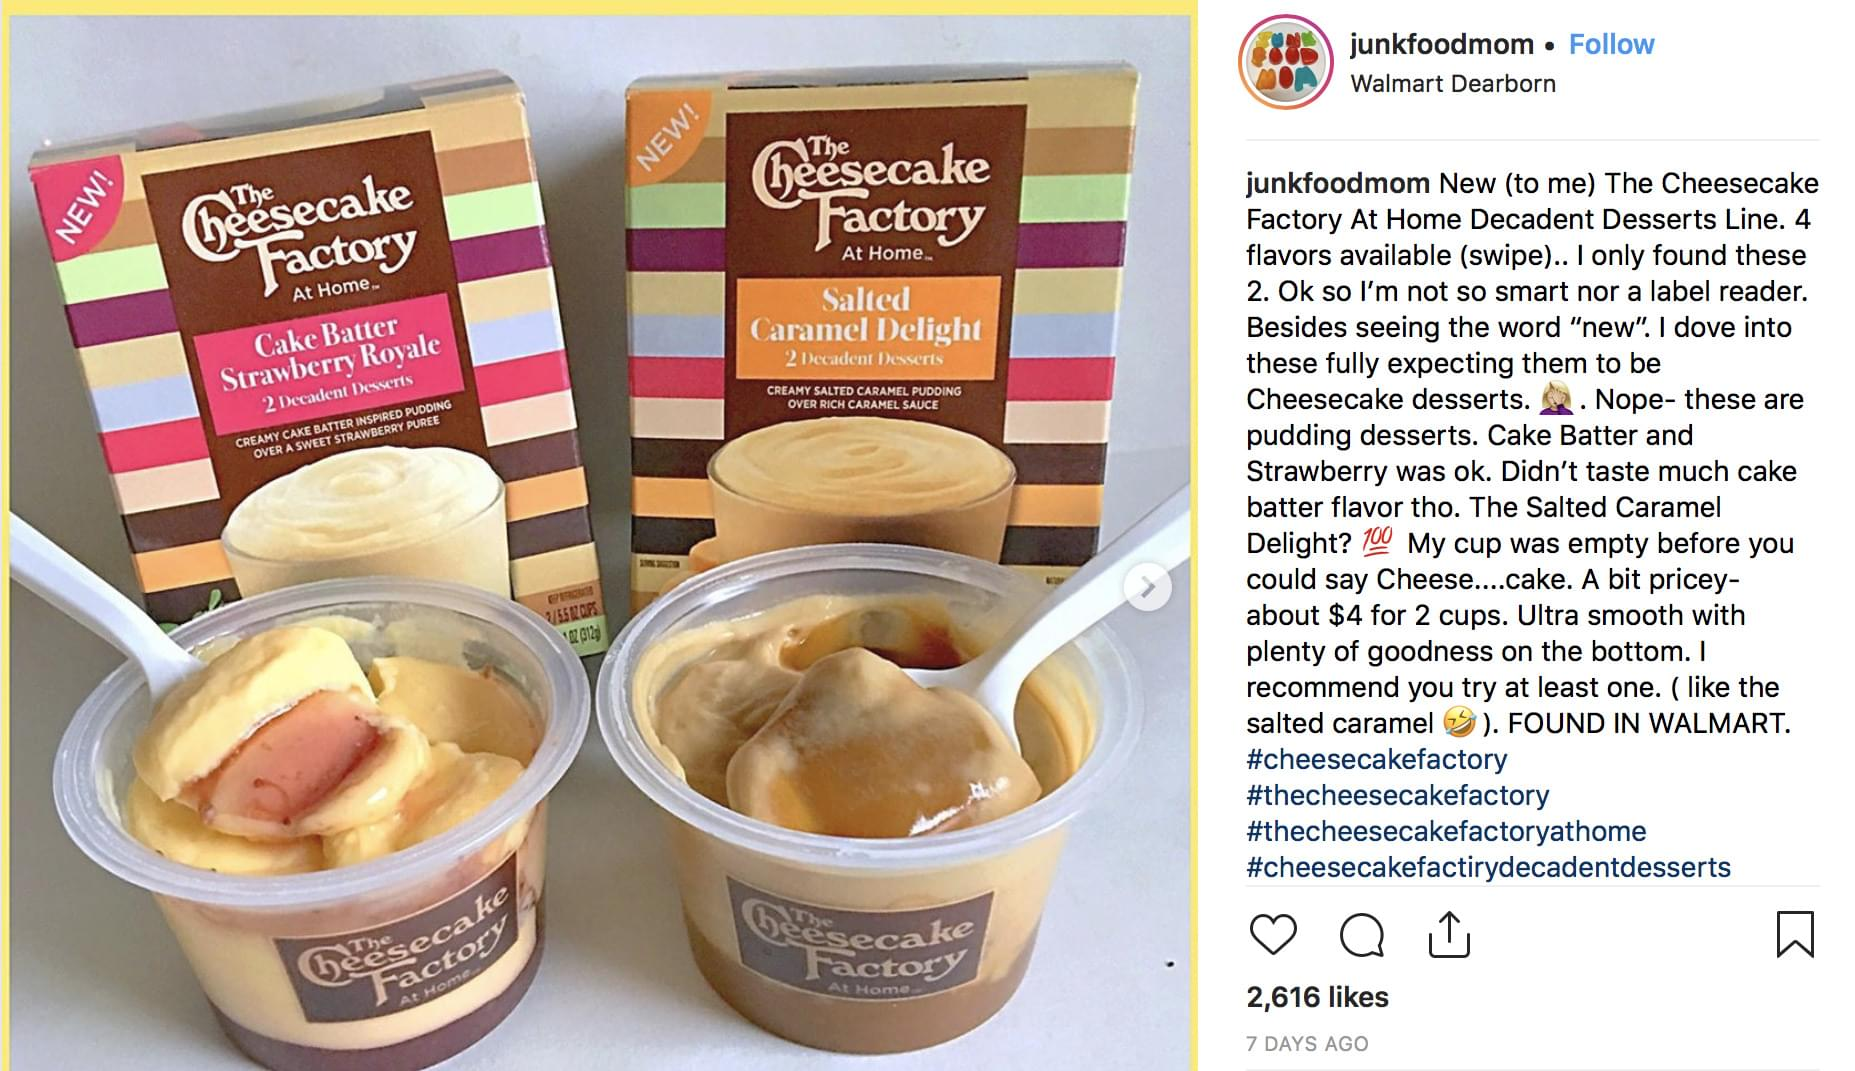 The Cheesecake Factory has released a line of puddings